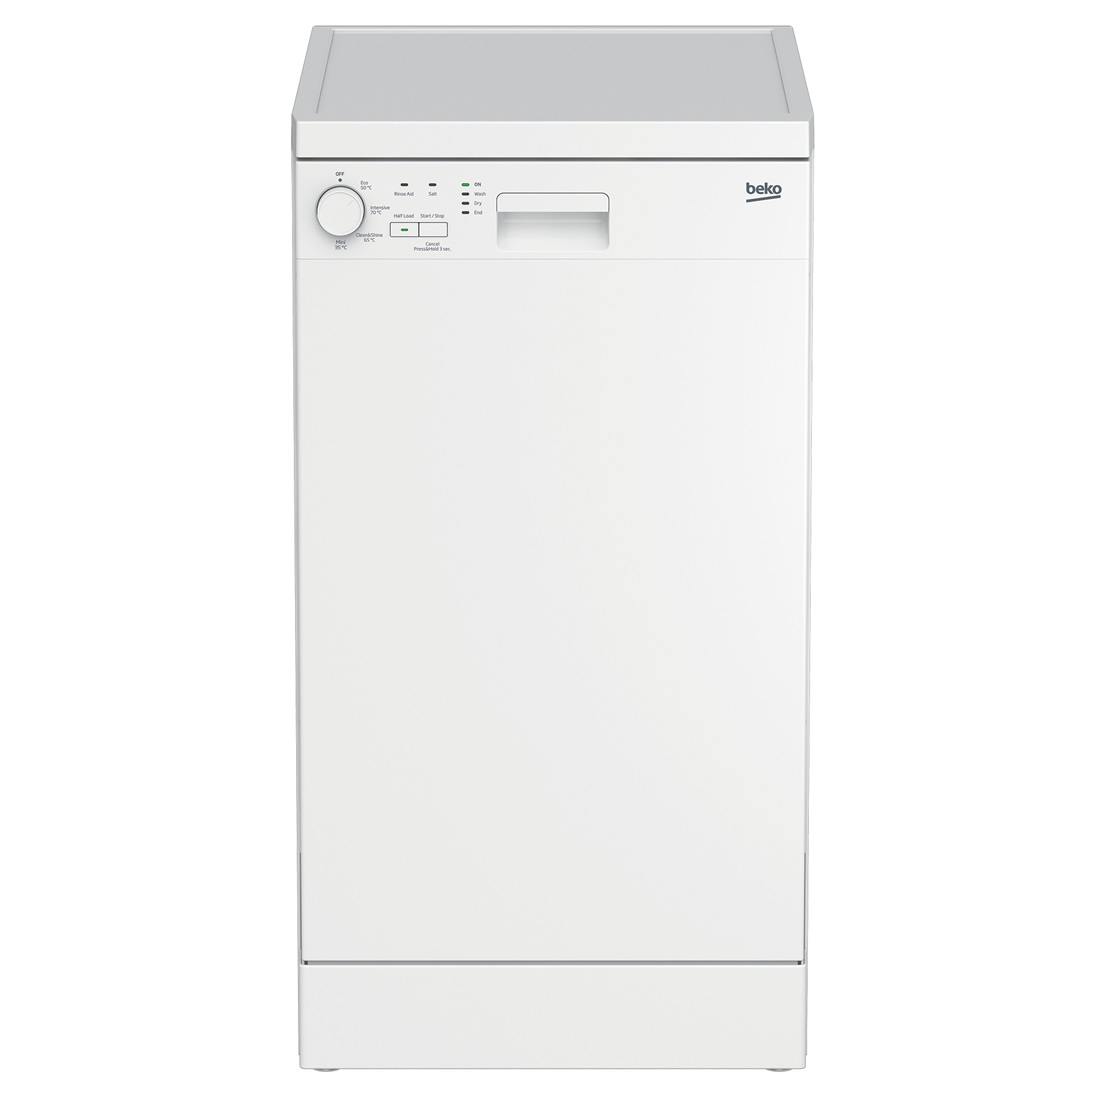 Compare retail prices of 10-Place Slimline Dishwasher 4 Progs Class A+ White to get the best deal online